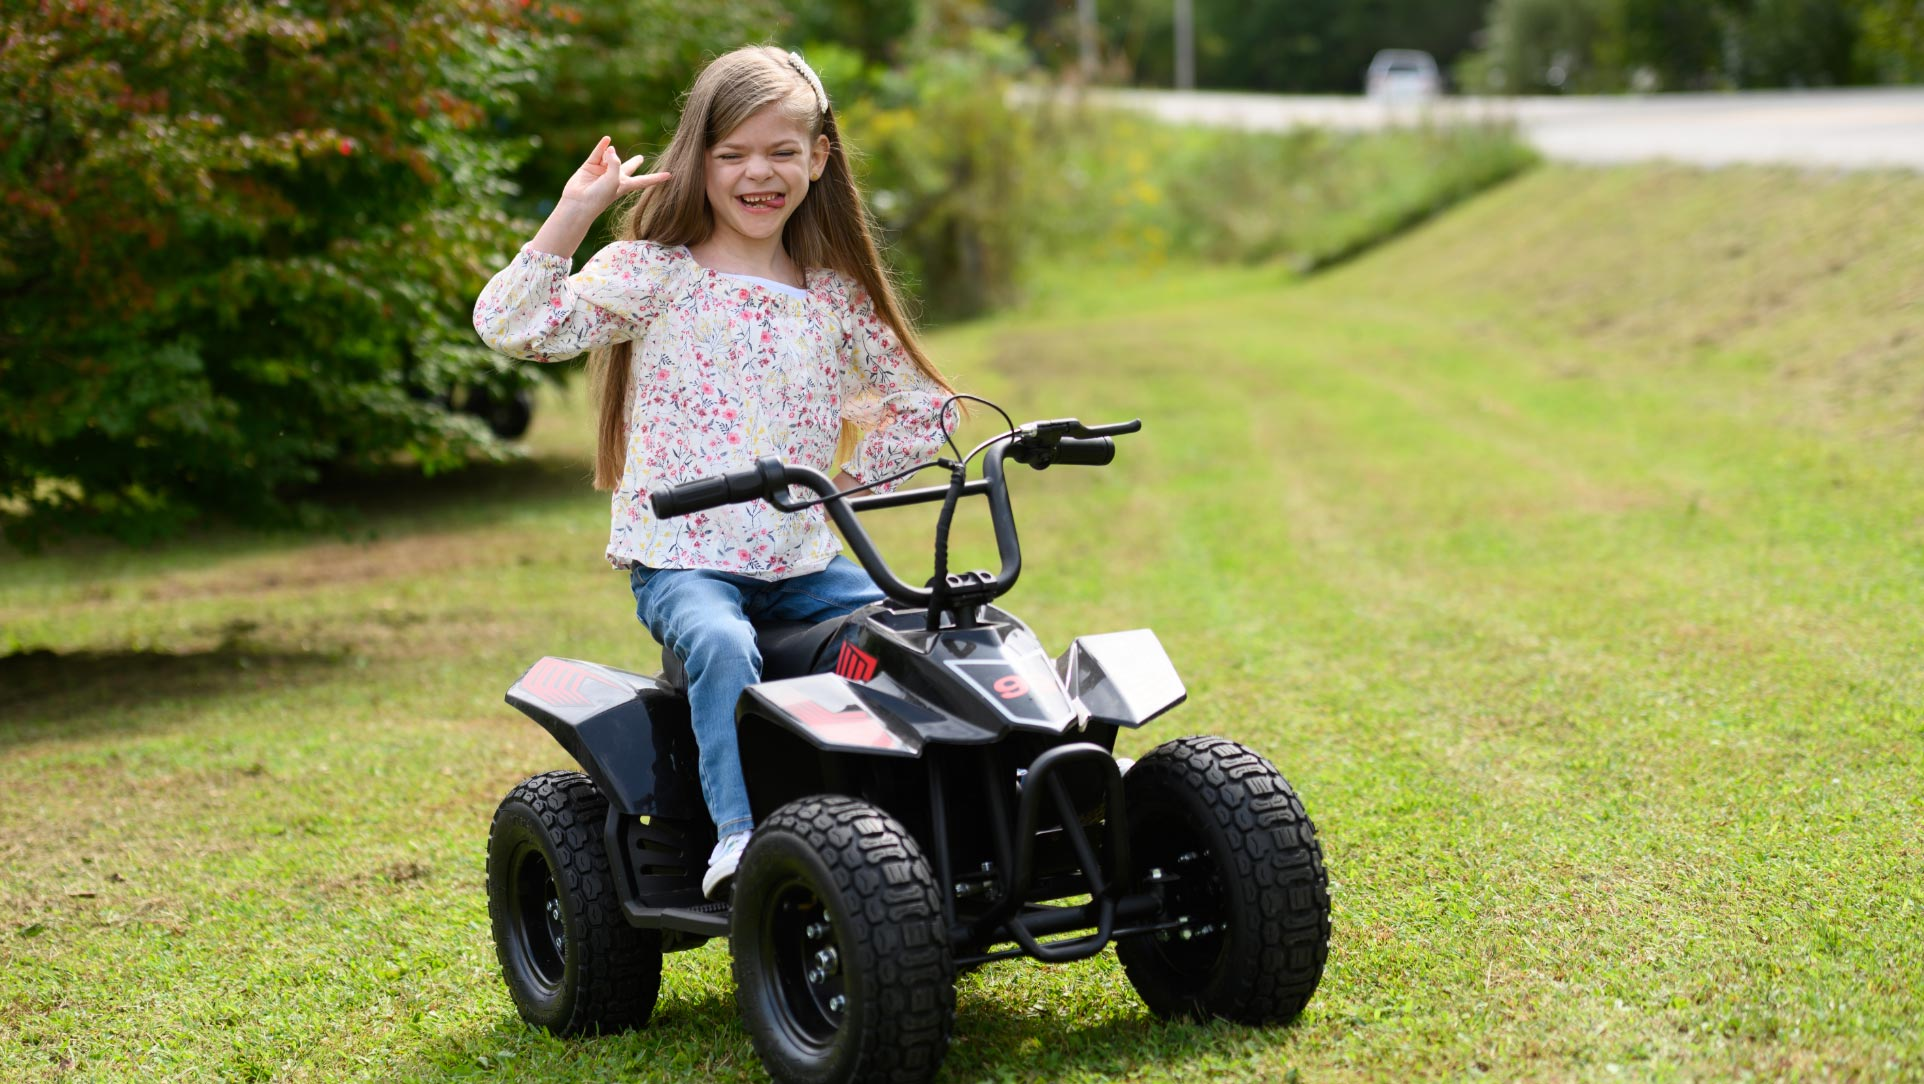 Taytum sits on a tiny ATV. She's wearing a floral top and jeans and her waist-length hair is loose. She's smiling, her tongue is out, and she's flipping a peace sign to the camera.